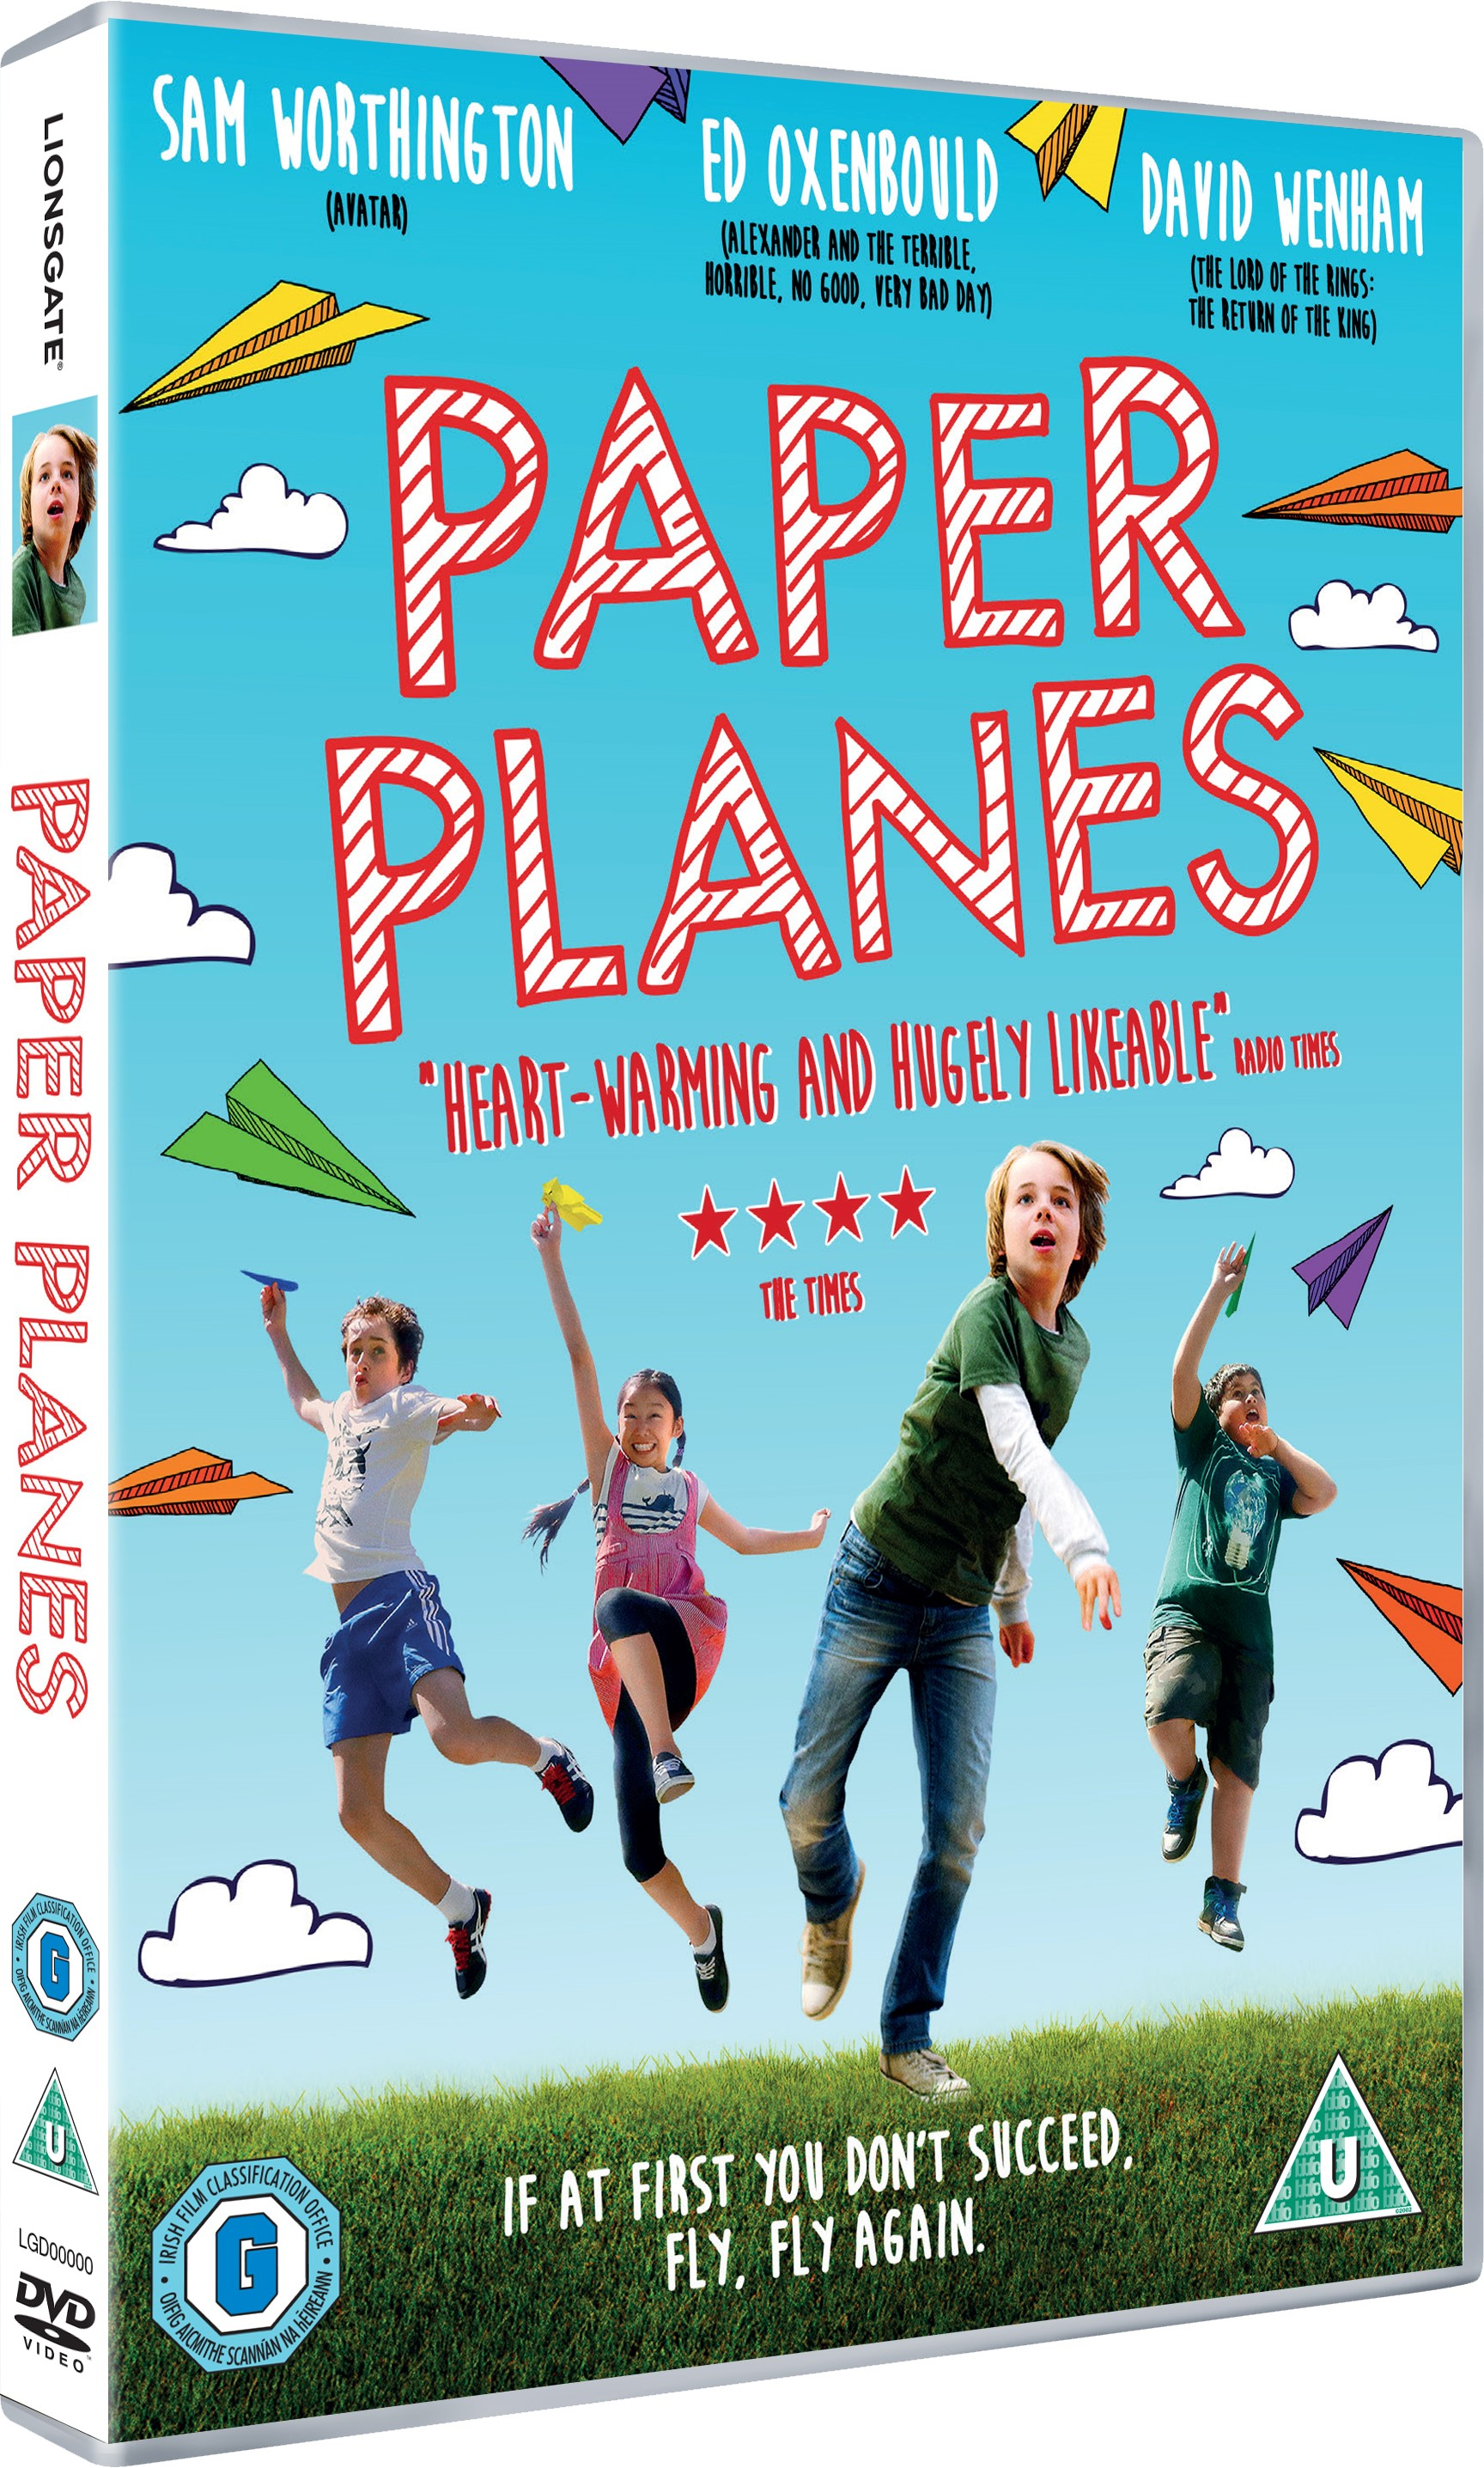 Win 1 of 2 Copies Of The New Release Film: Paper Planes On DVD (Giveaway Closed) The Oliver\\\'s Madhouse